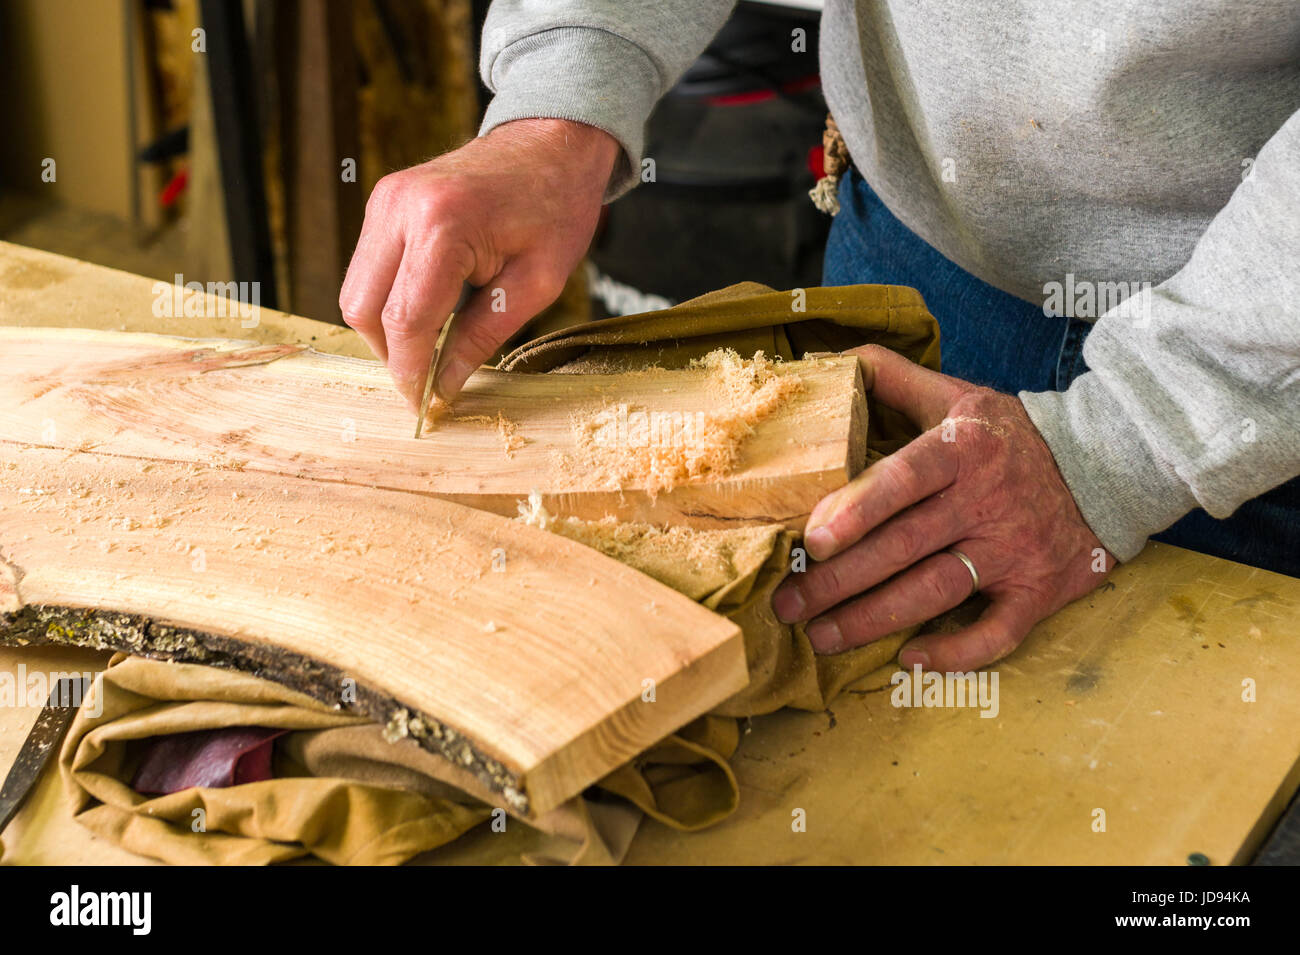 Woodworker Smoothing Wood With Glass In Workshop - Stock Image